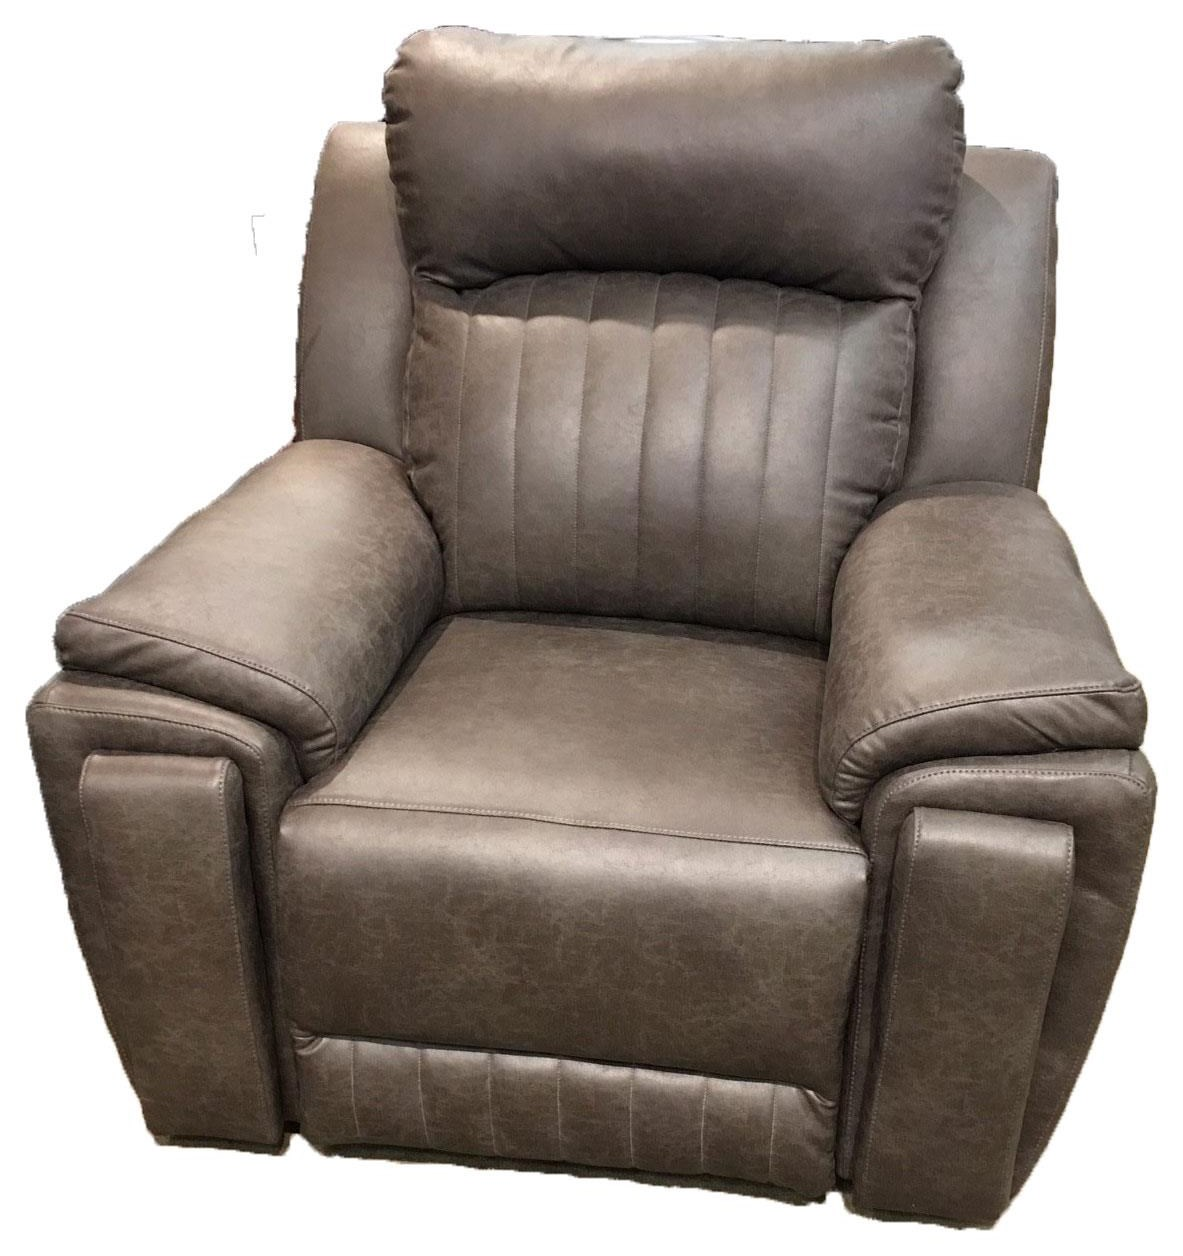 Silver Screen Southern Motion recliner- Silver Screen by Southern Motion at Godby Home Furnishings